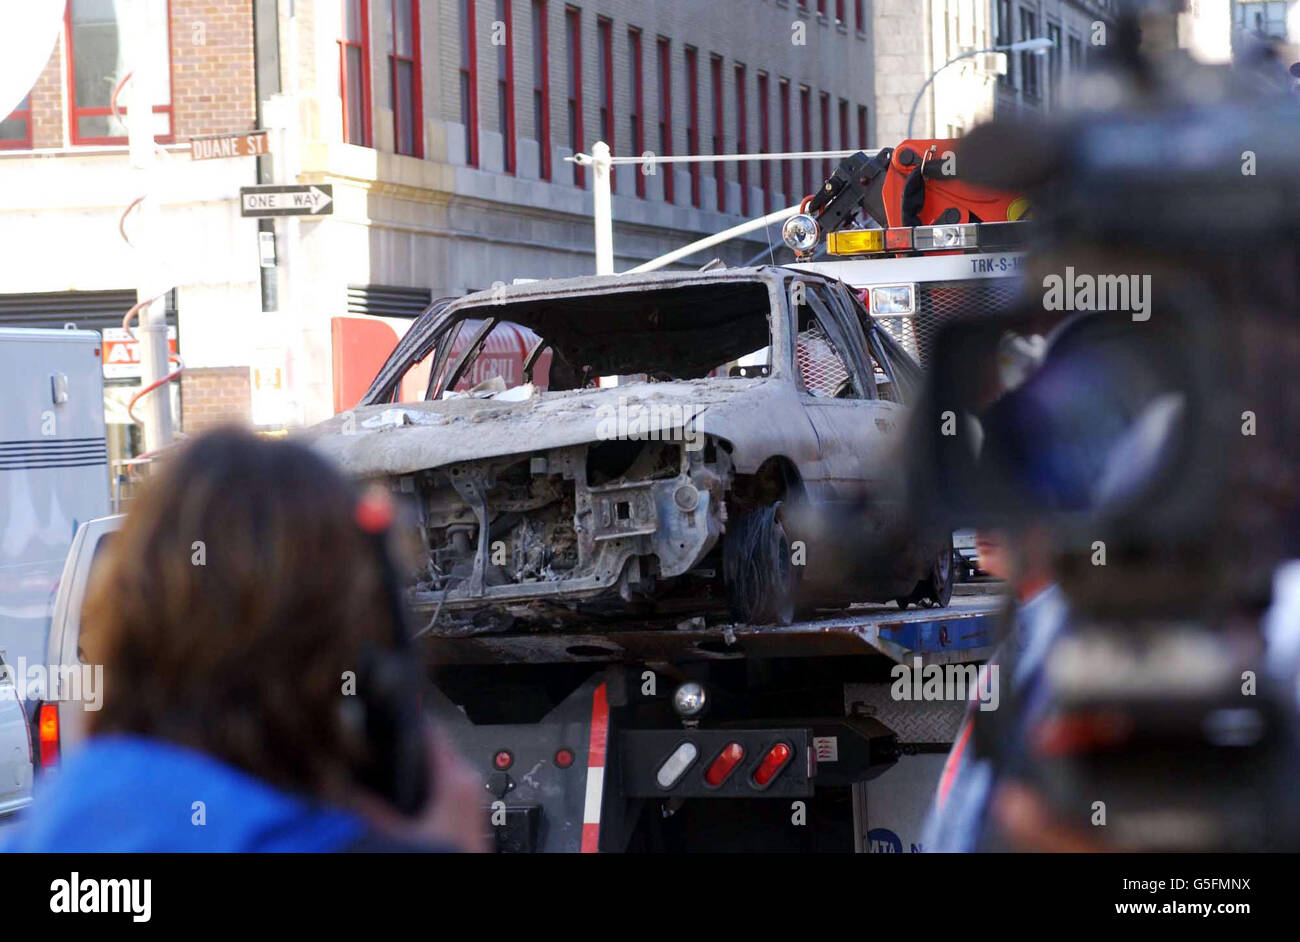 Aftermath of NY disaster/ car - Stock Image